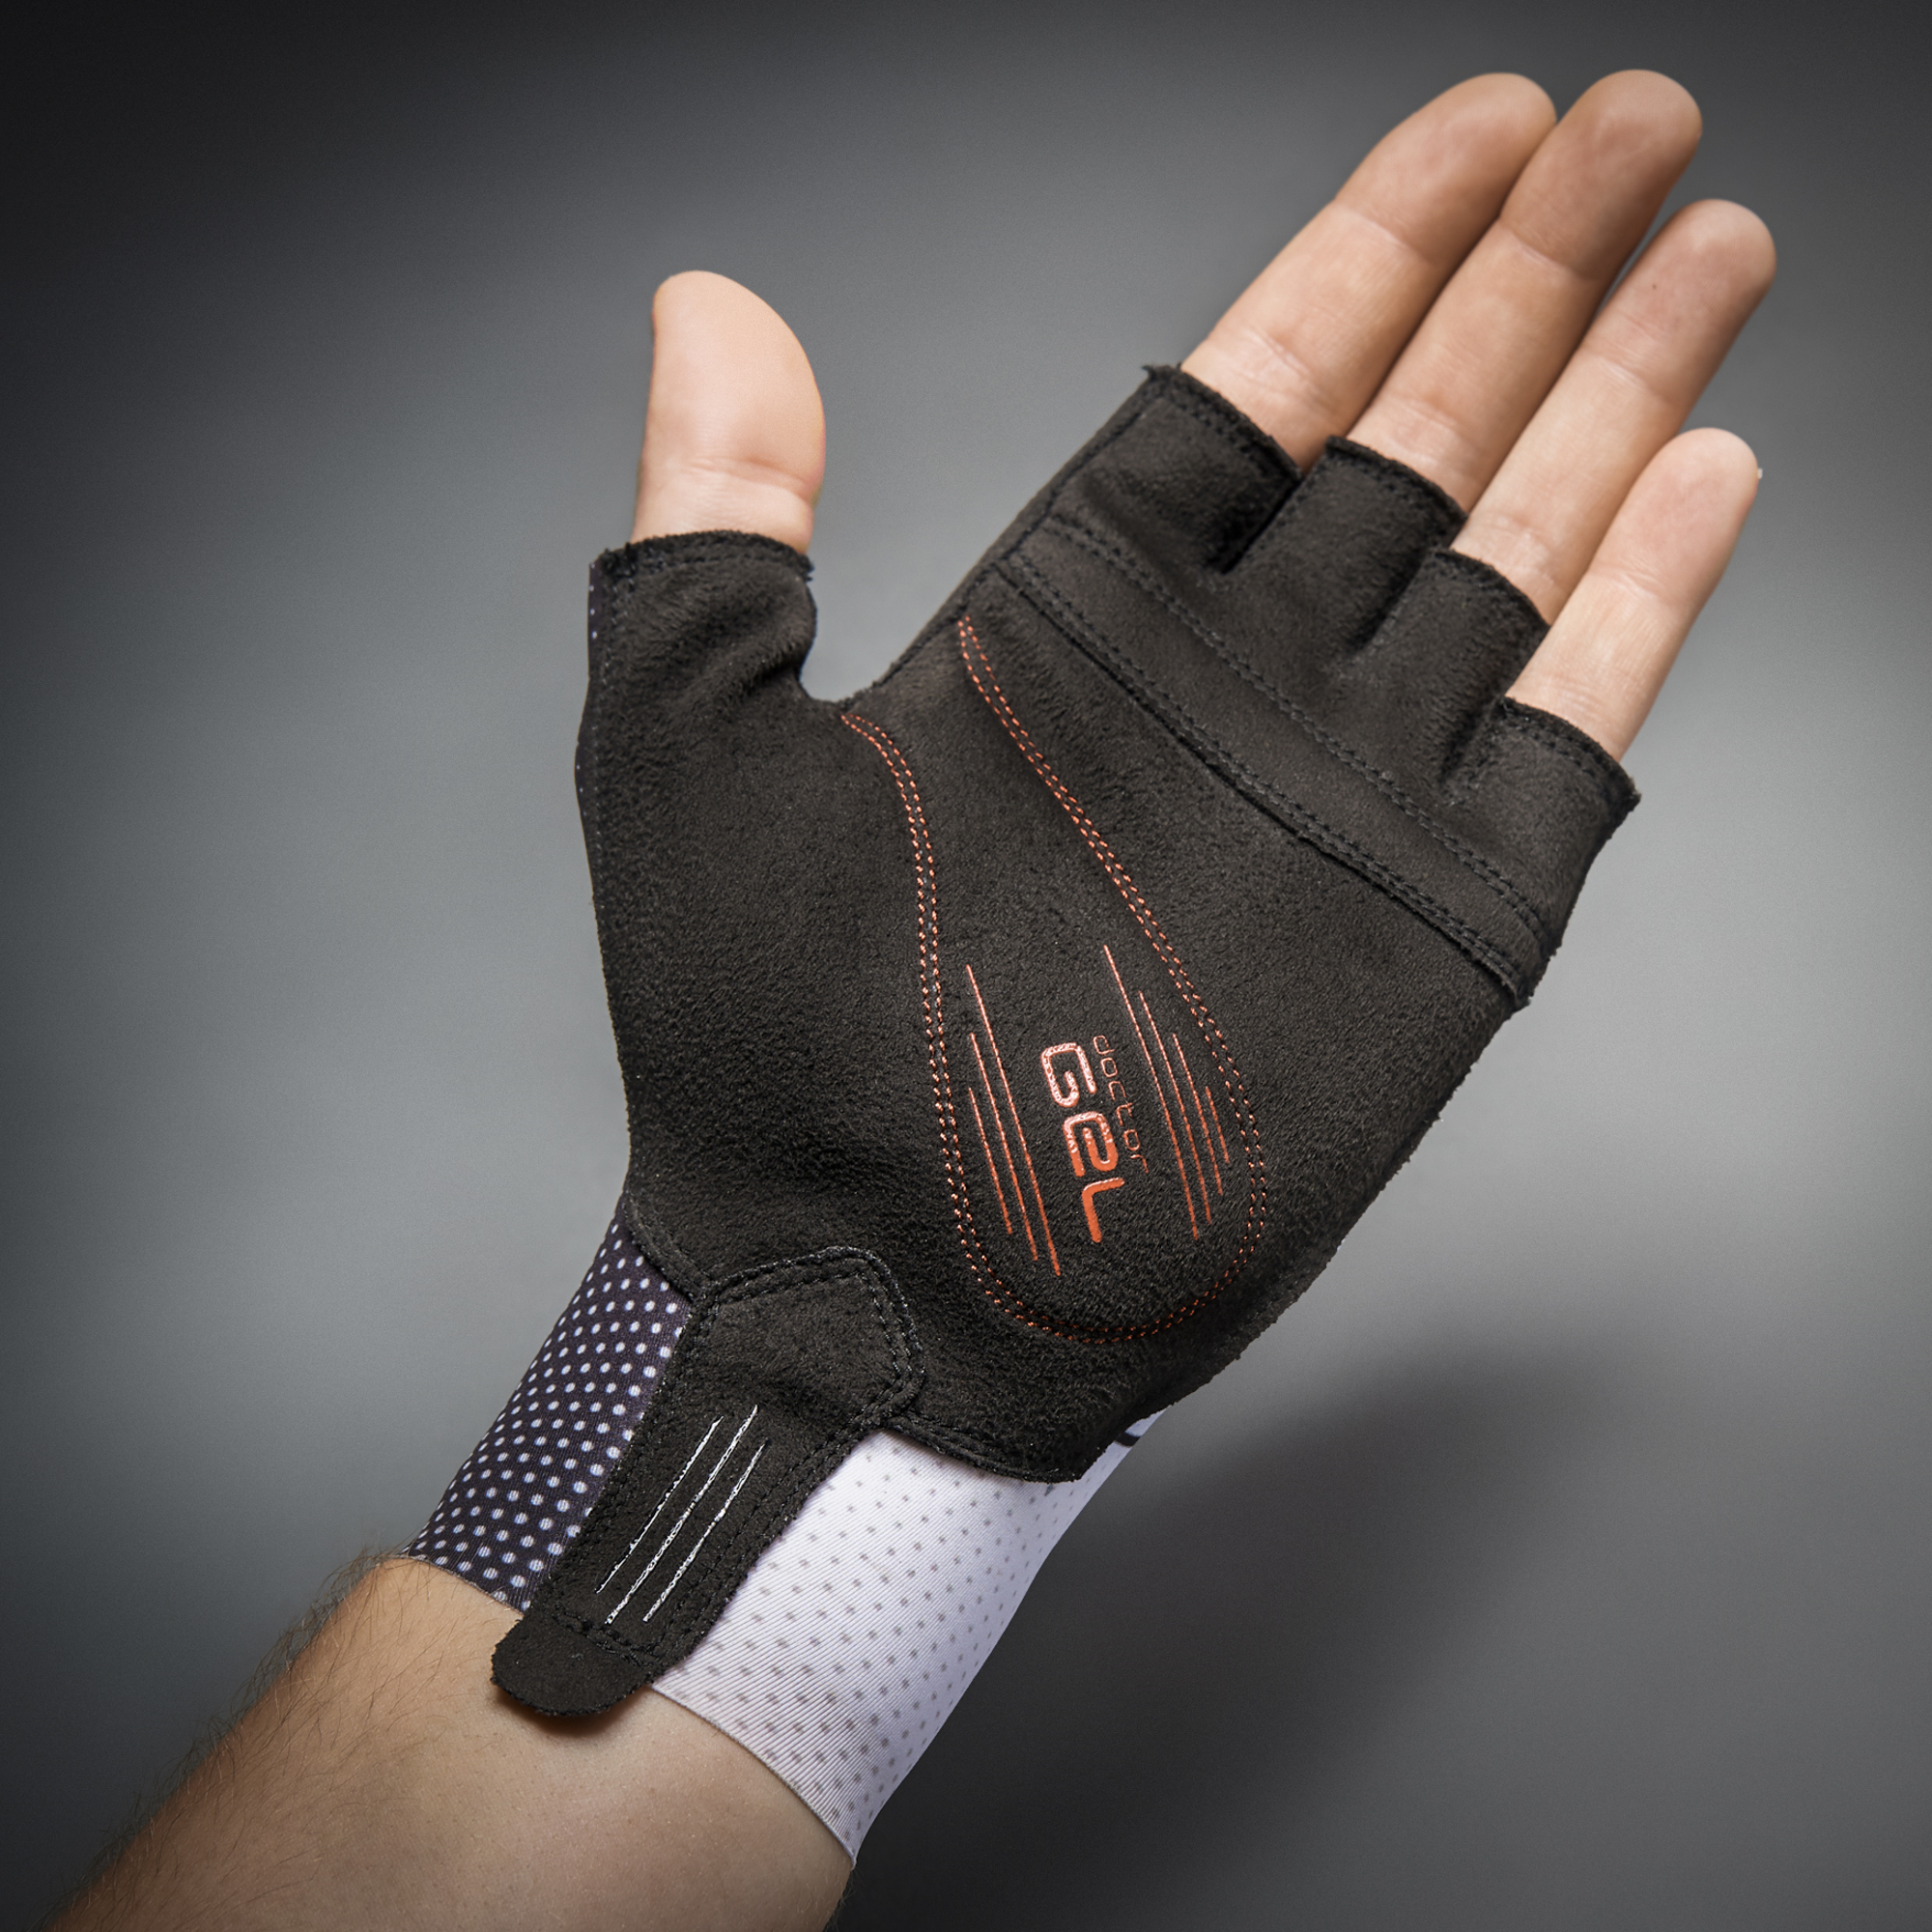 Gripgrab - Aero TT | cycling glove